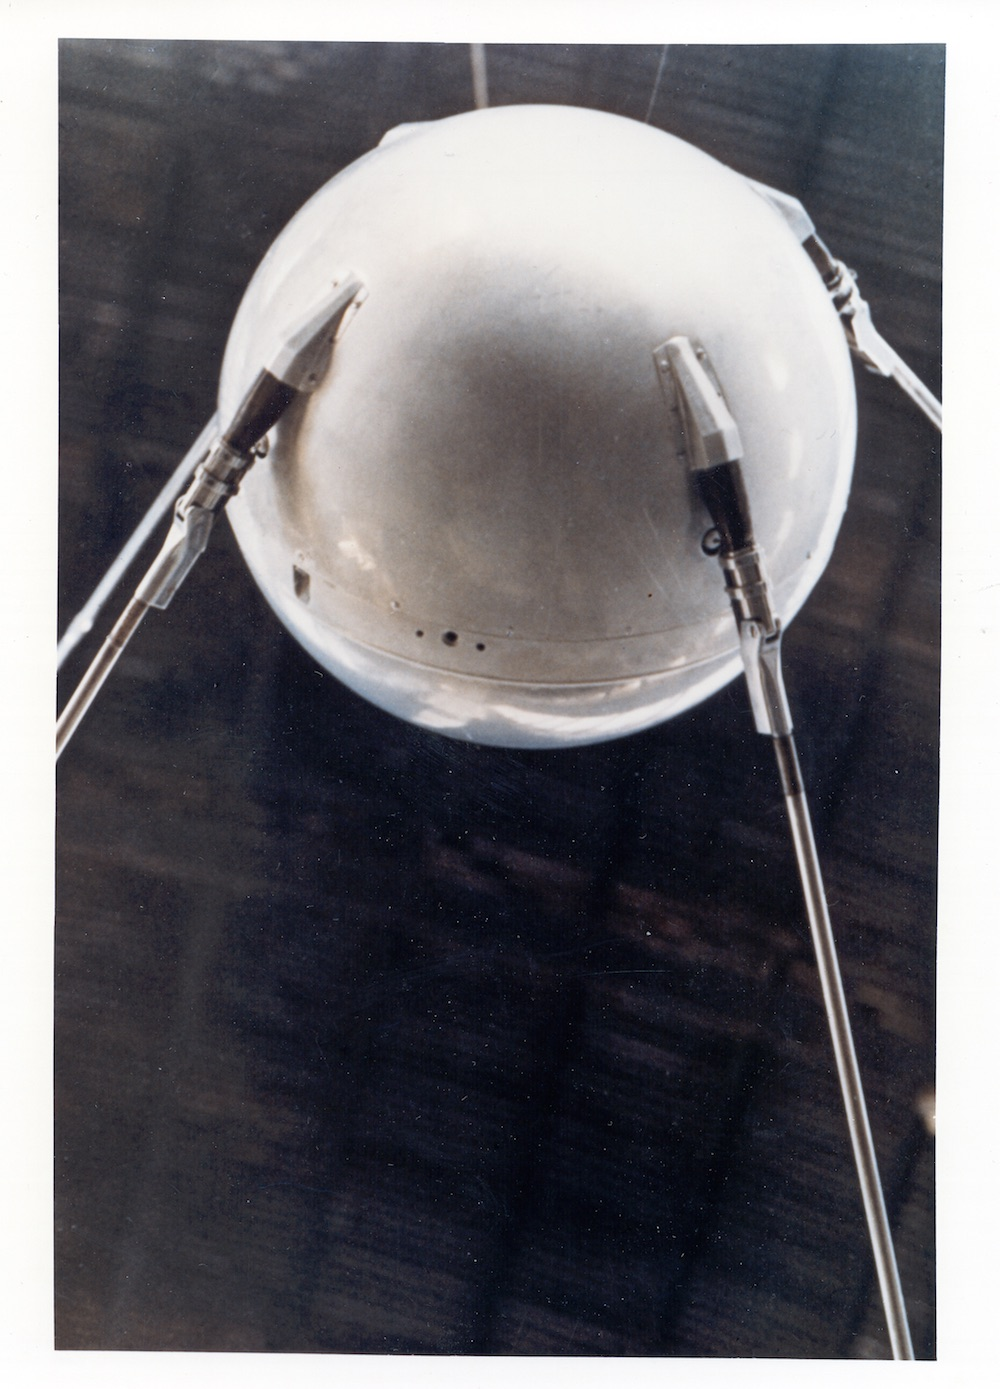 Few people outside the Soviet Union got this close to Sputnik. Amateur astronomers around the world, however, helped professionals track the world's first satellite. Source: Nasa